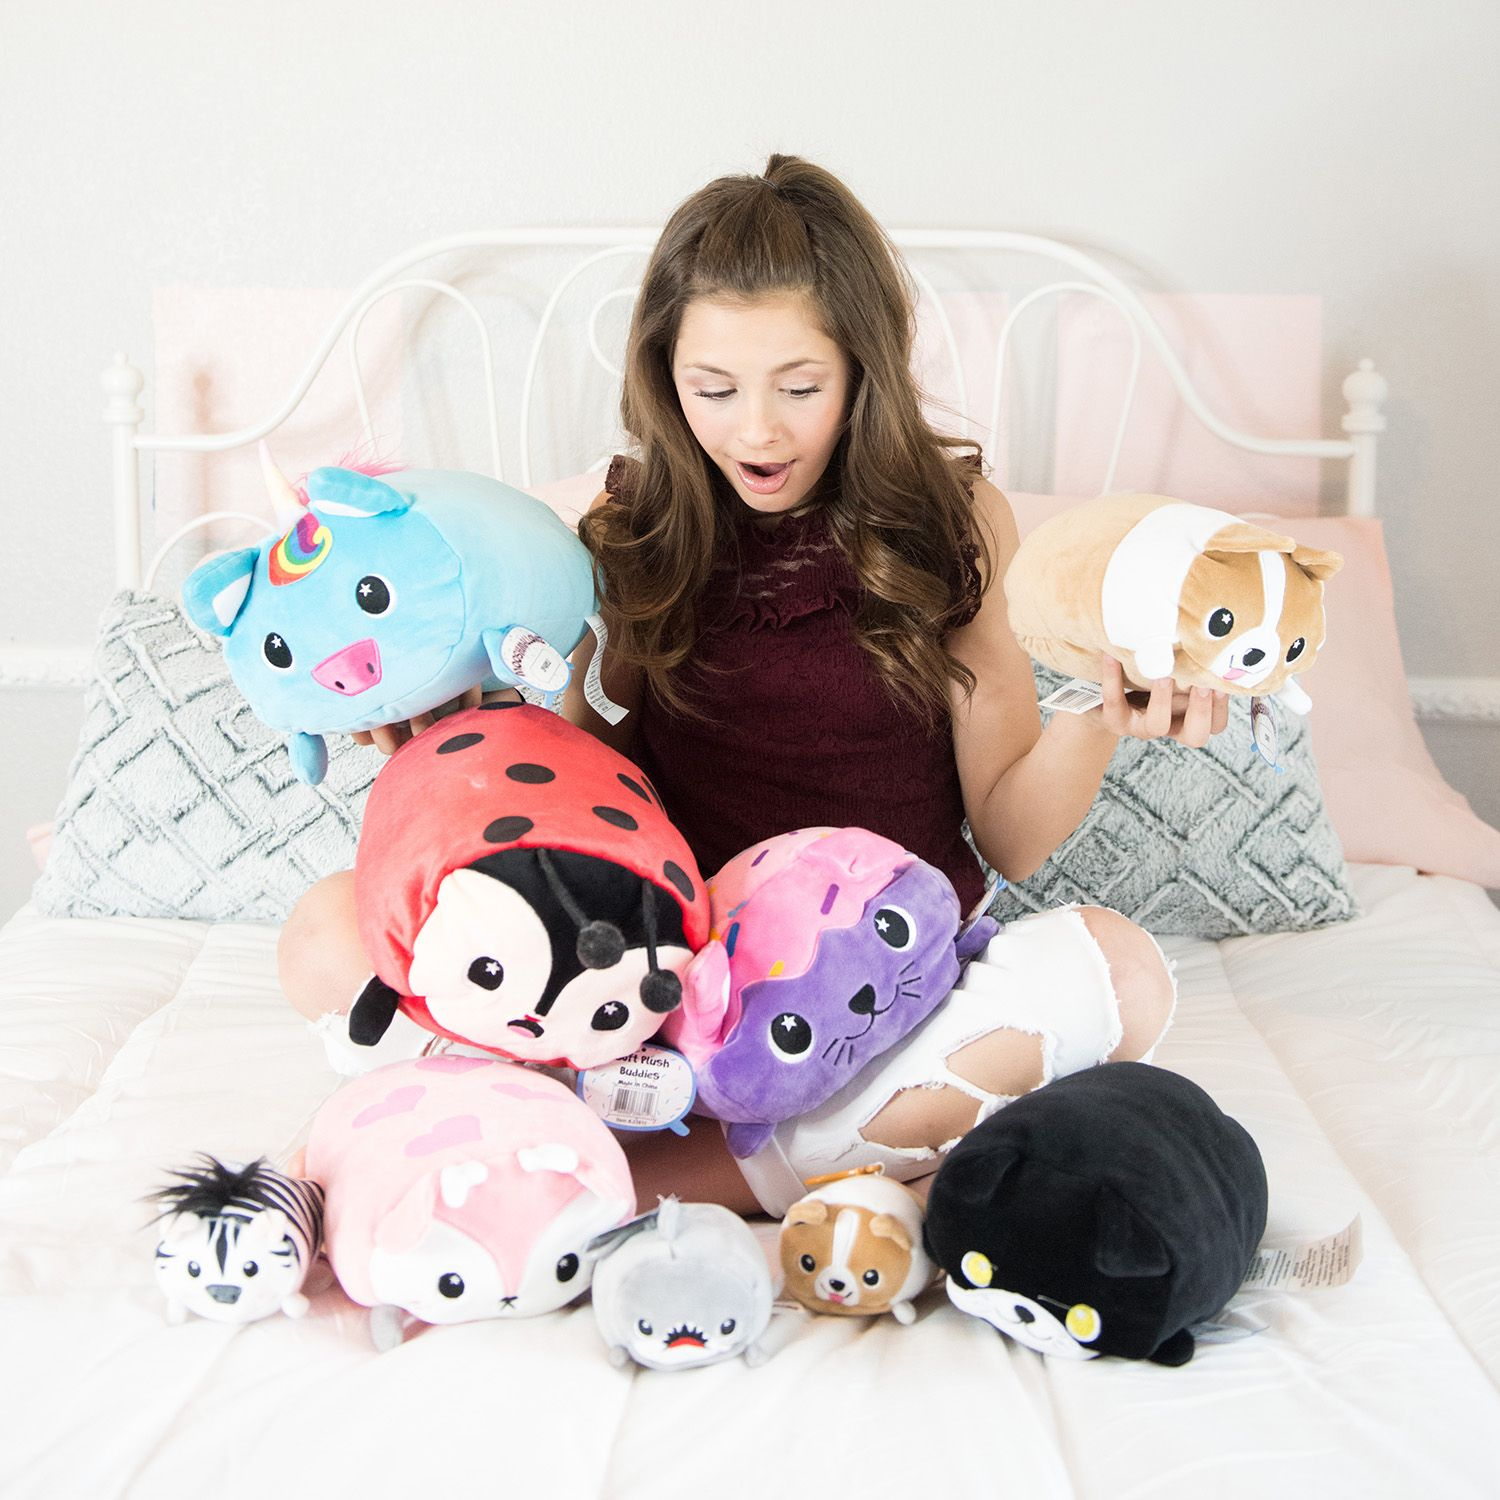 Our Moosh Moosh Pillows Are Ready To Play Pick Up Your Favorite Character At A Cvs Pharmacy Near You Favorite Character Character Ready To Play